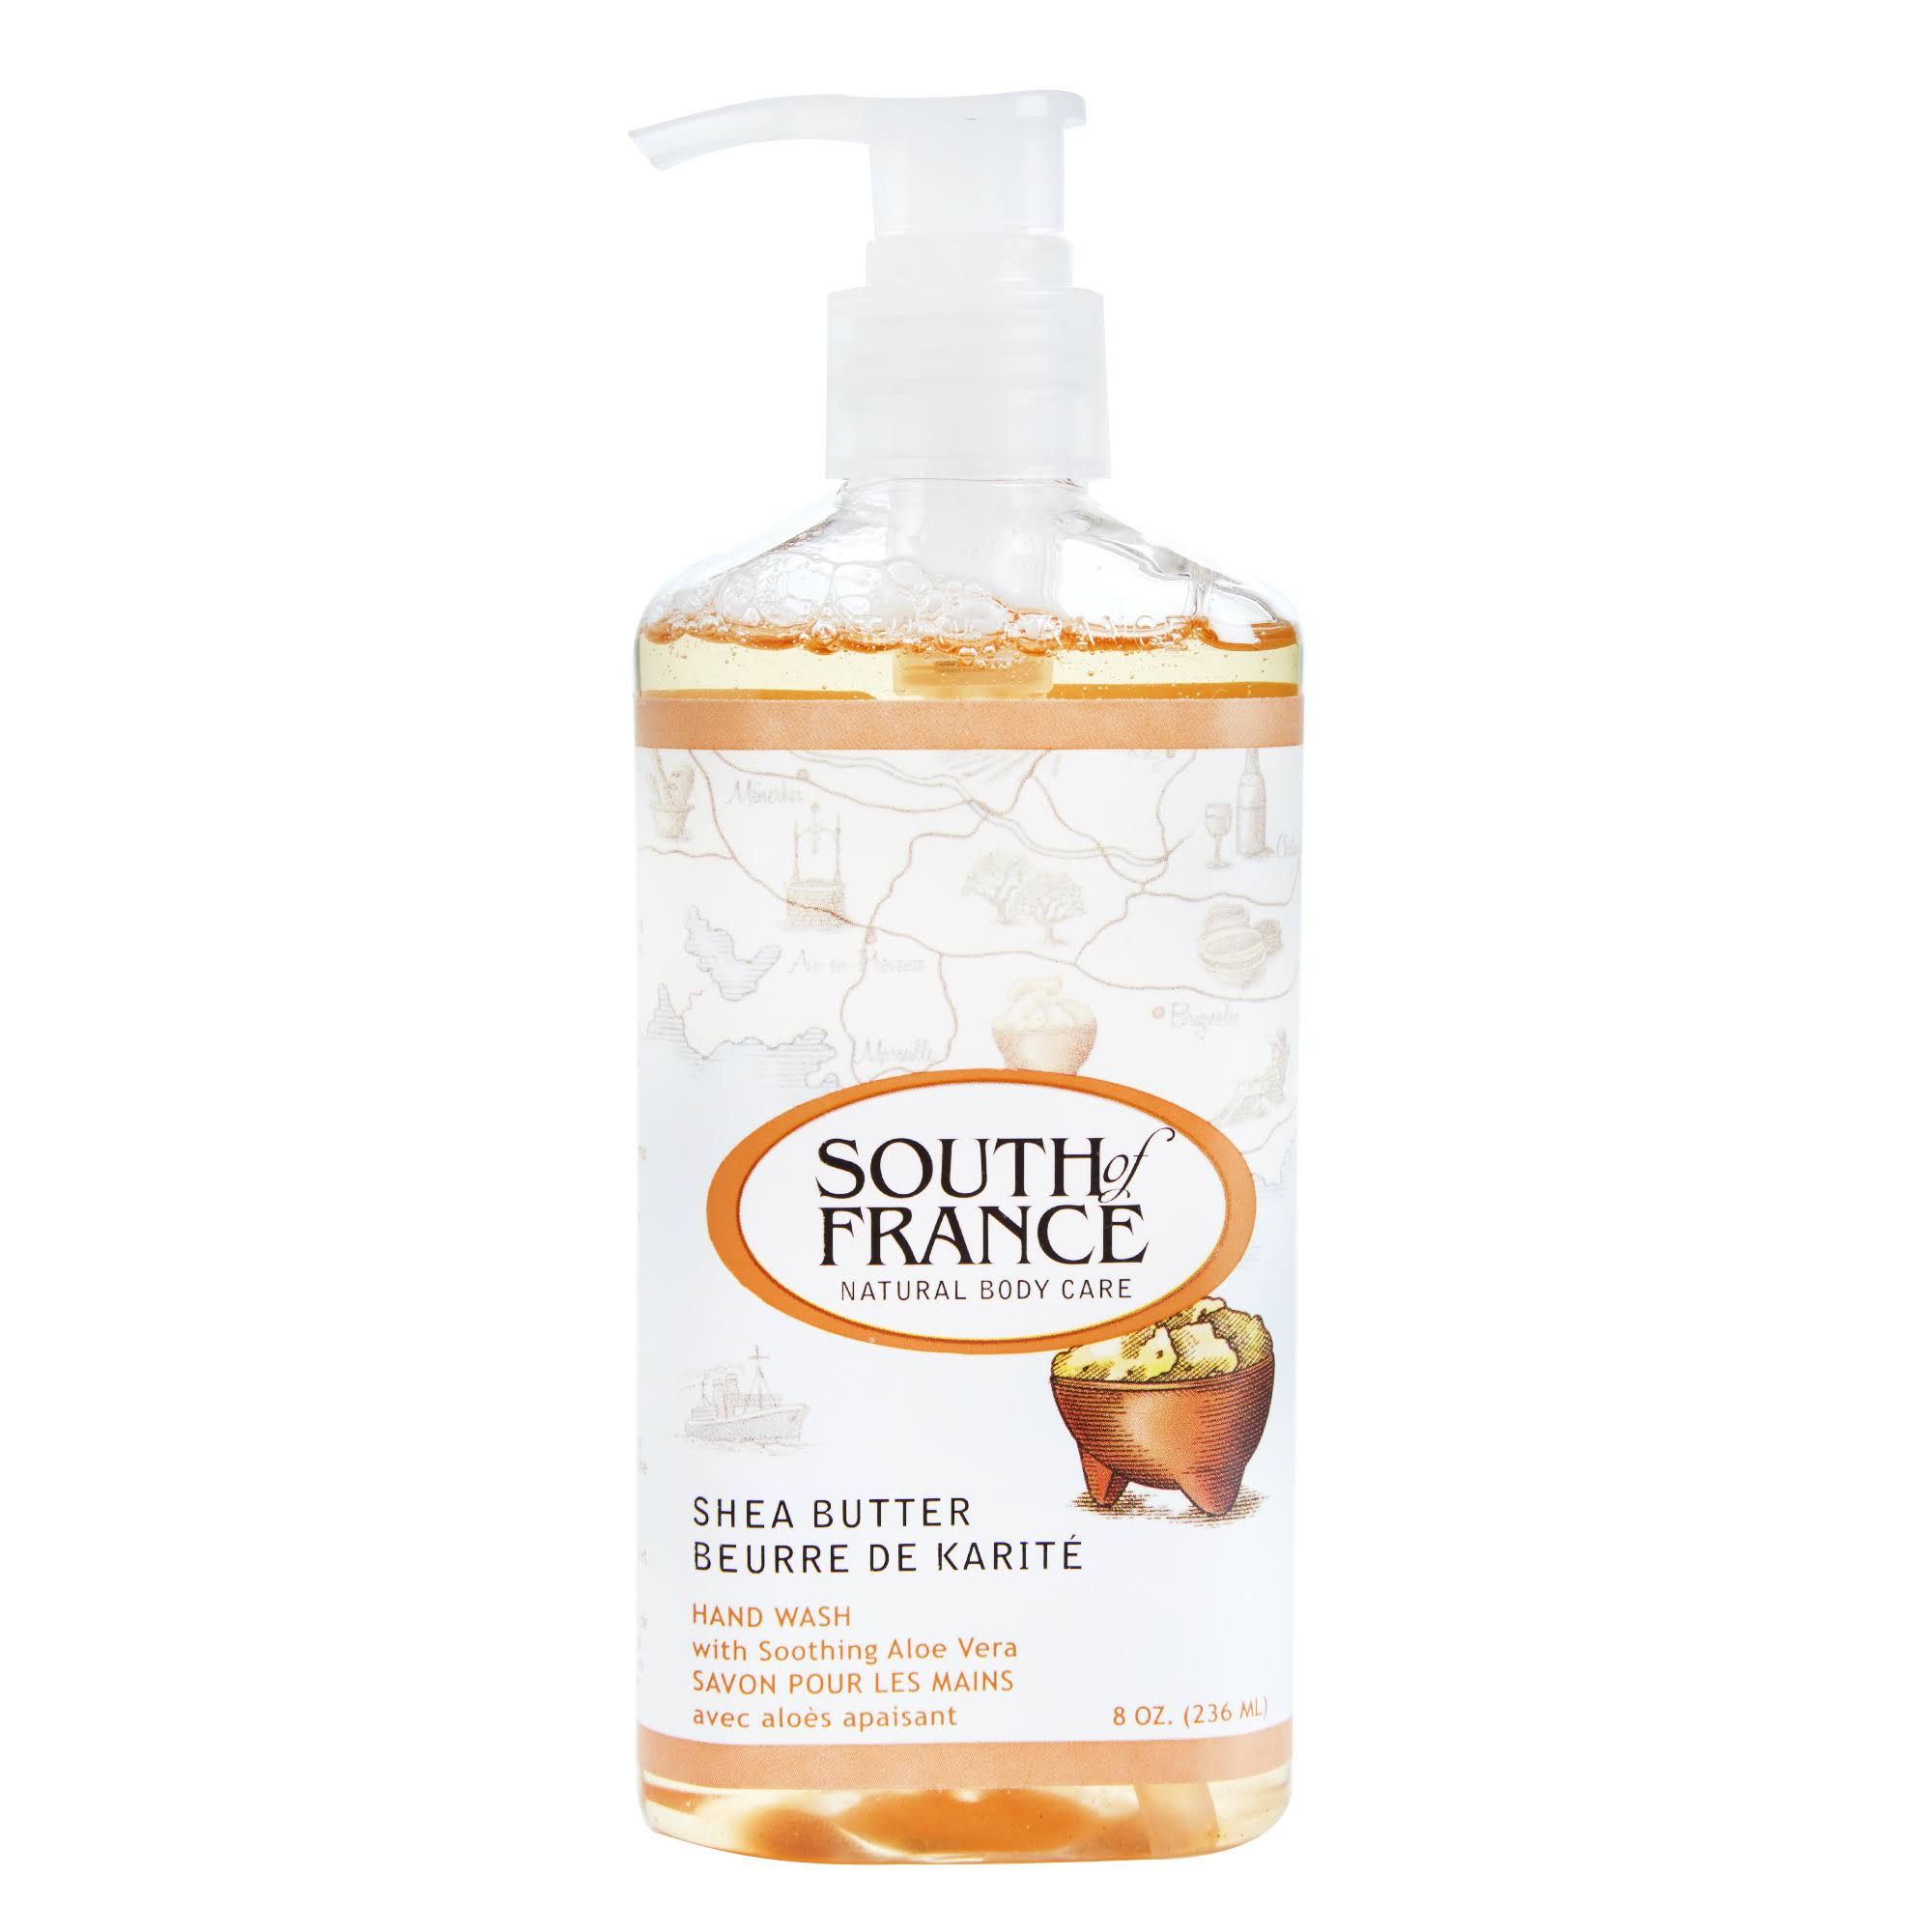 South of France Shea Butter Hand Wash - 8oz